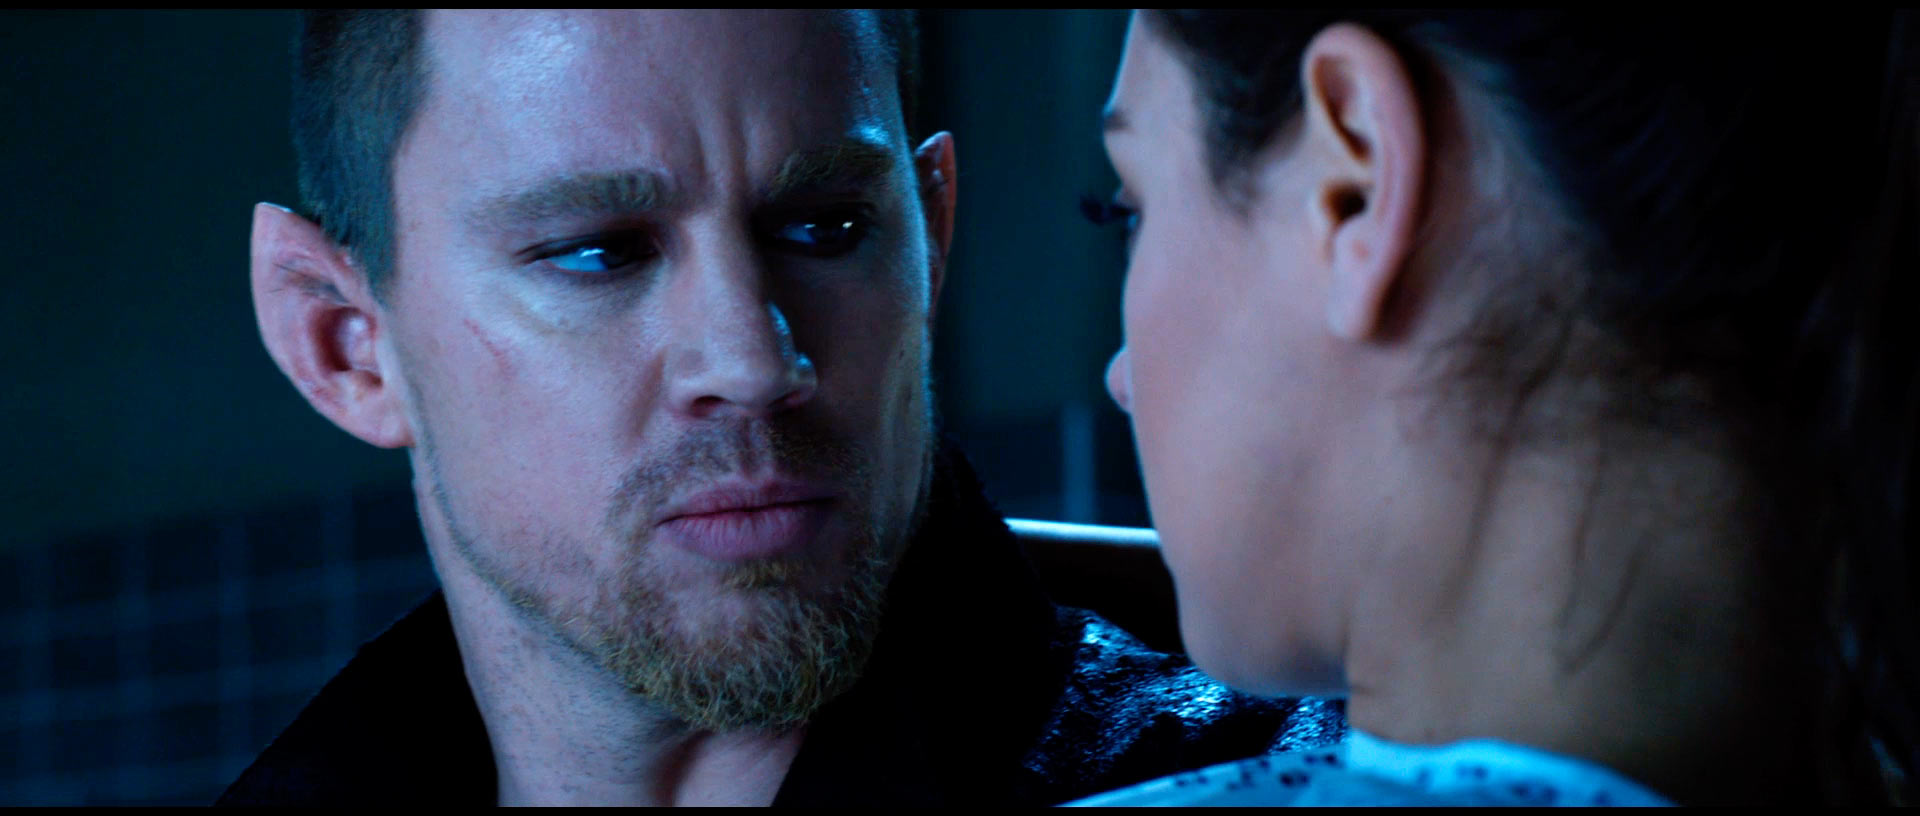 Jupiter Ascending - Movie Trailers - iTunes